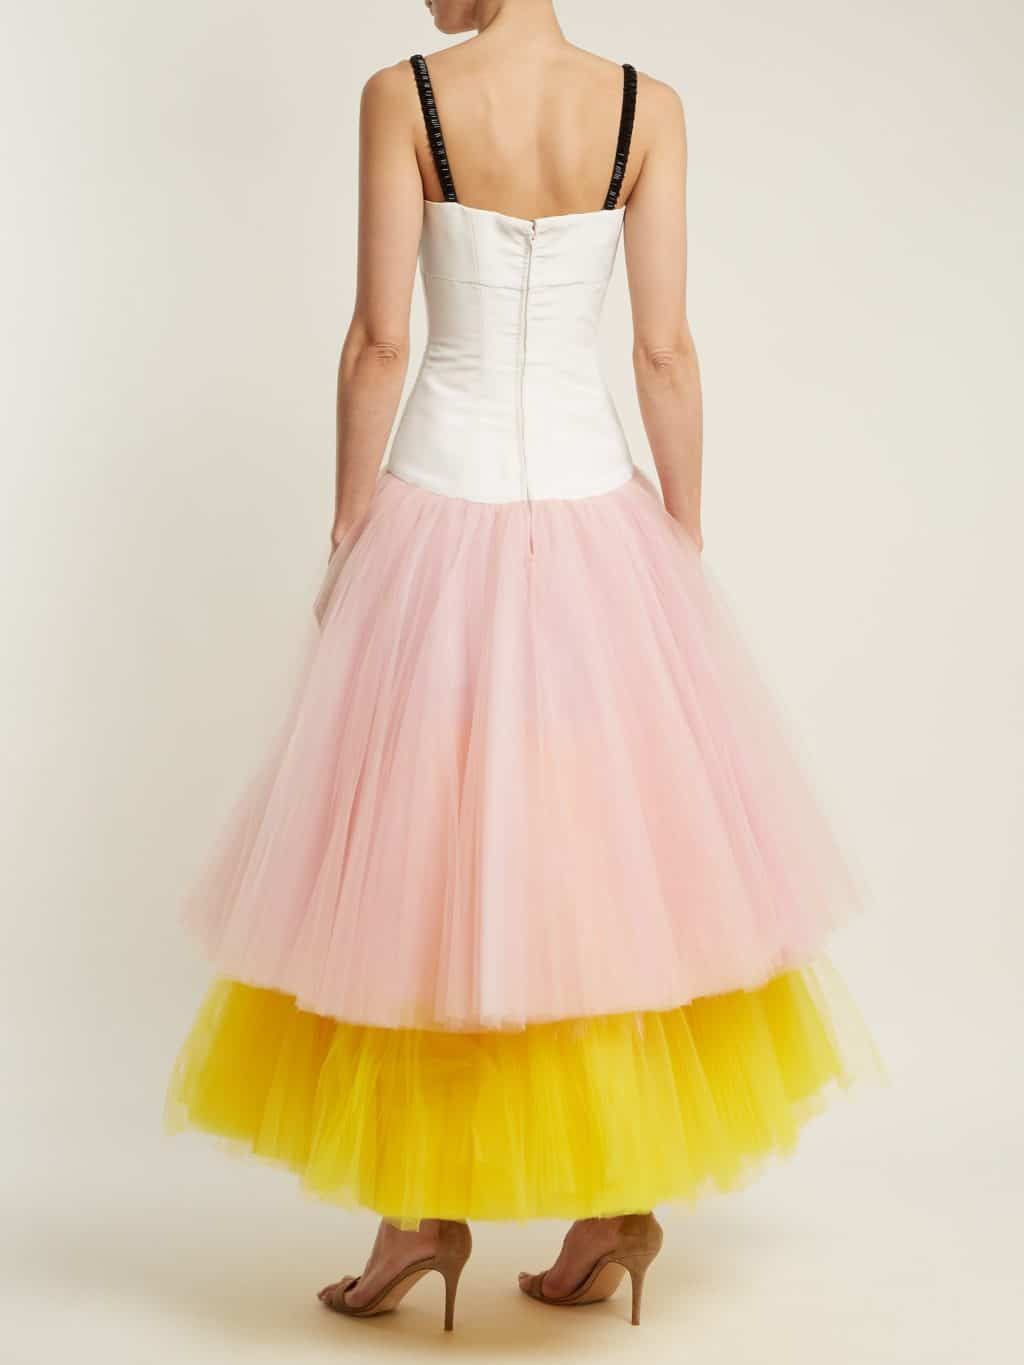 9d7332b2f66d CAROLINA HERRERA Contrasting Tiered Multicolored Dress - We Select ...